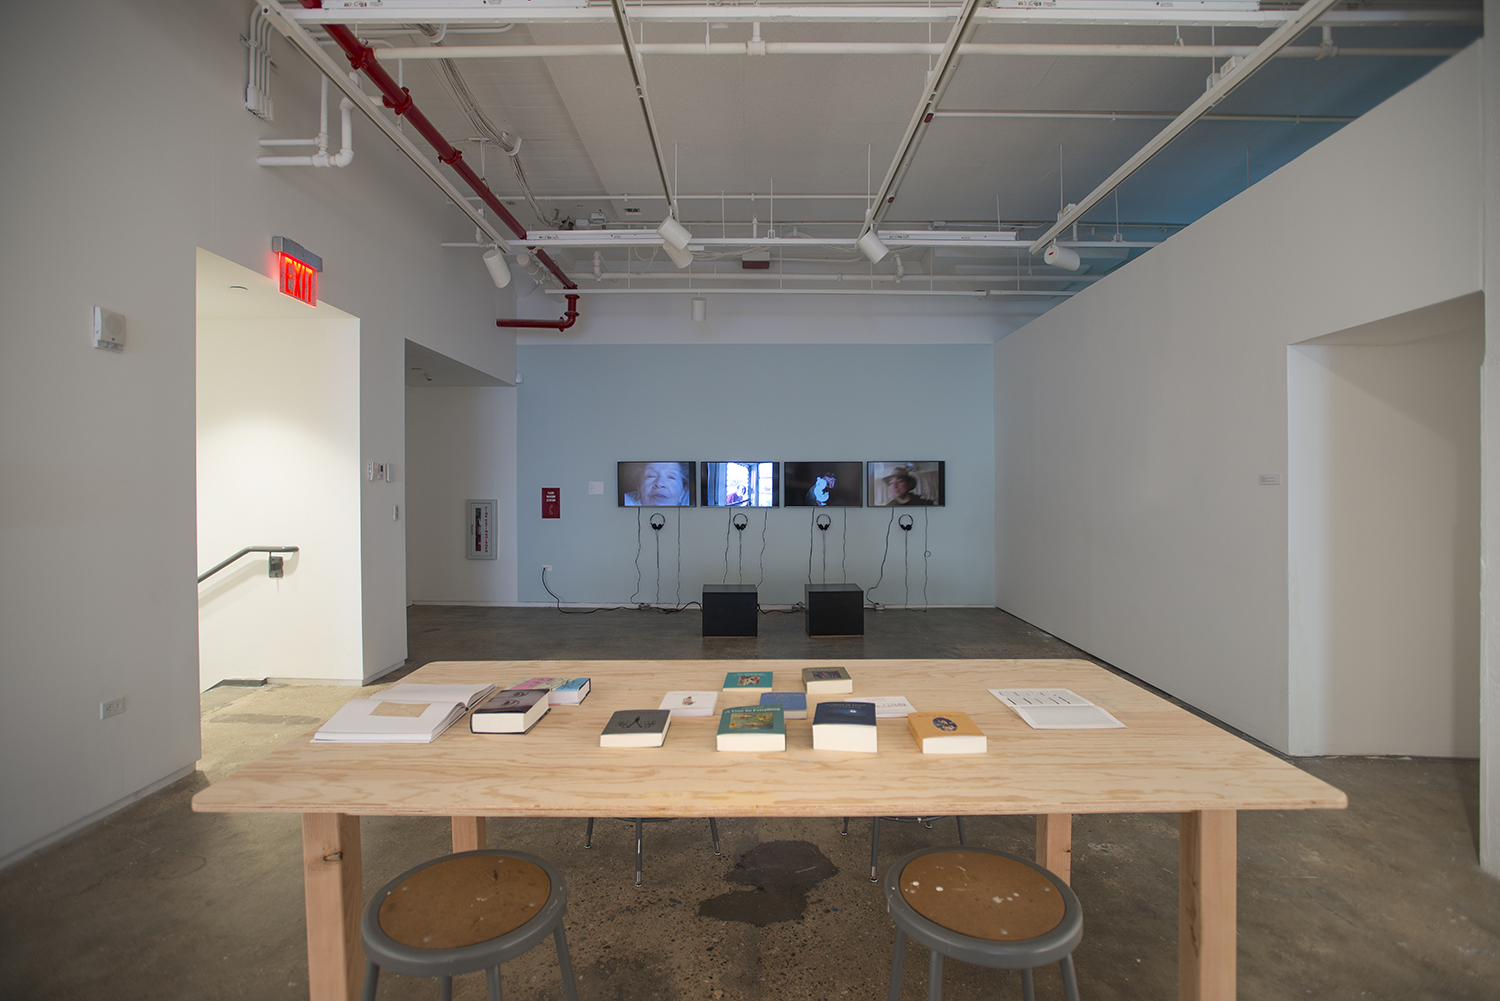 Installation view: Elective Affinities: A Library , Hunter College Art Galleries, 2017. Photo by Bill Orcutt.